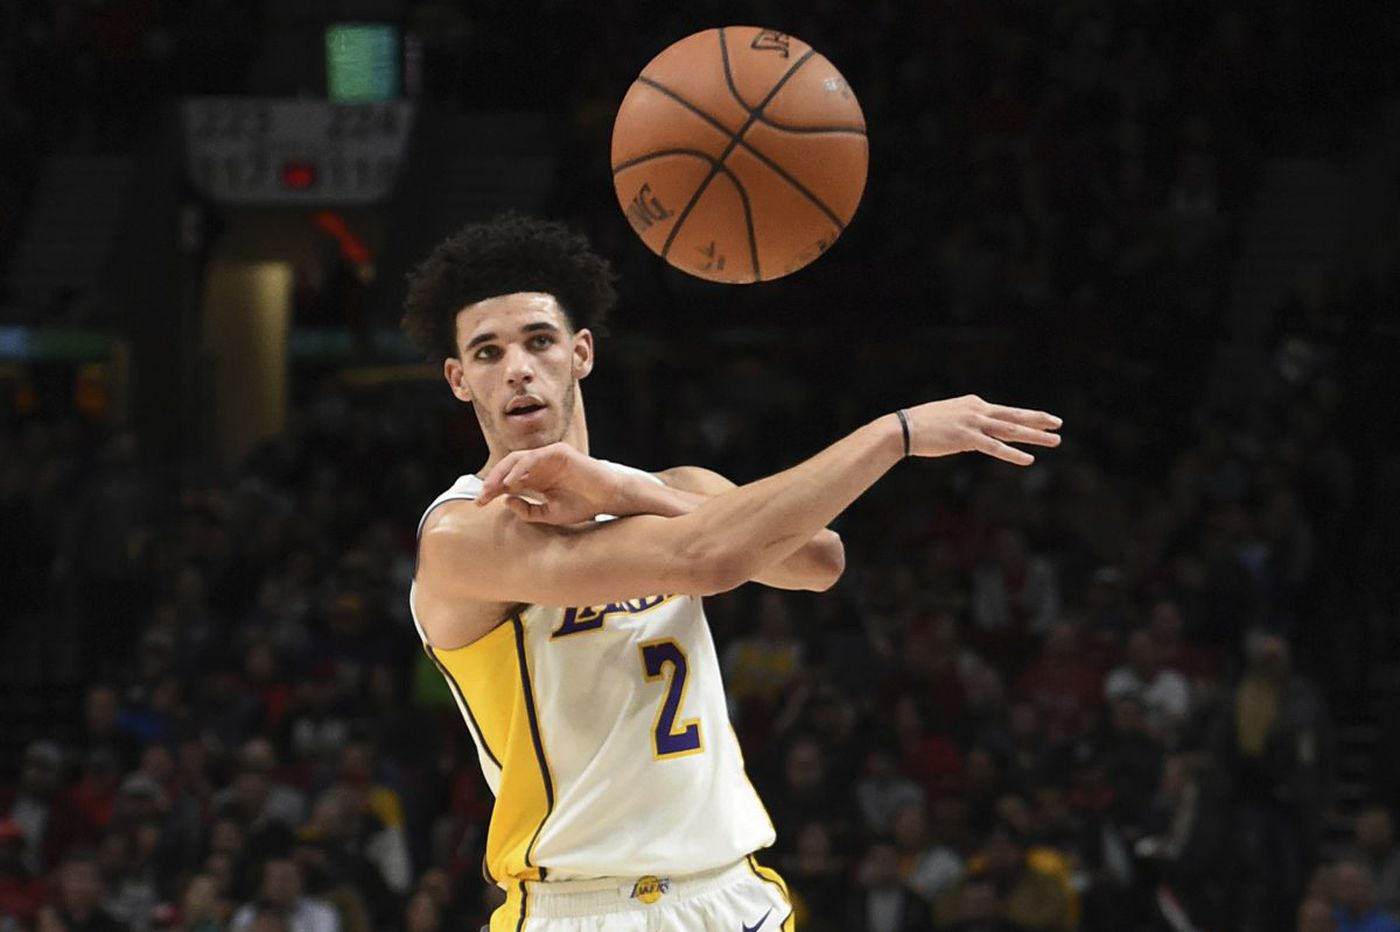 Sixers-Lakers to feature Ben Simmons-Lonzo Ball matchup